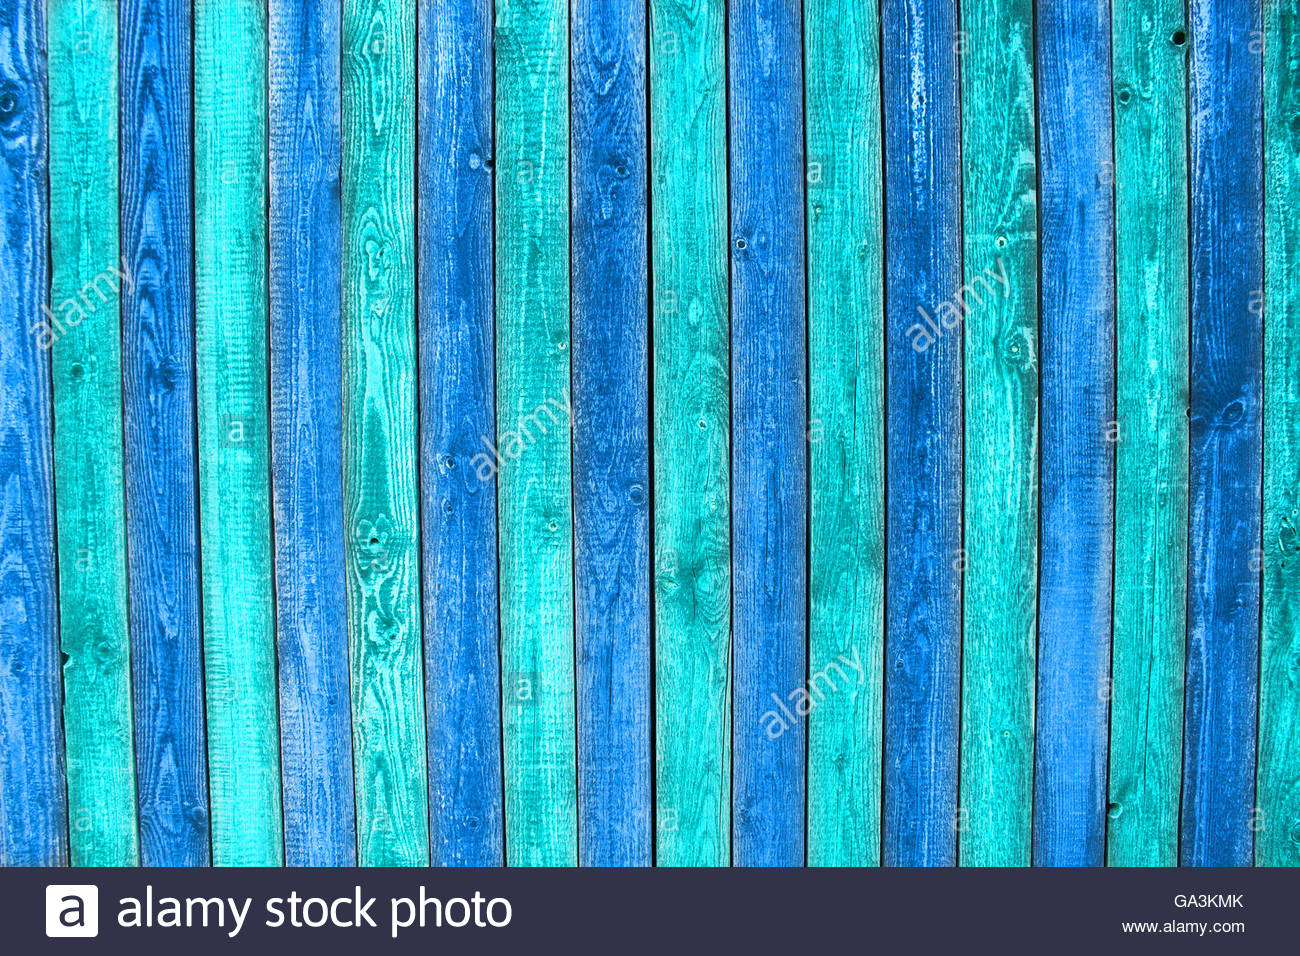 blue painted wooden planks - Stock Image